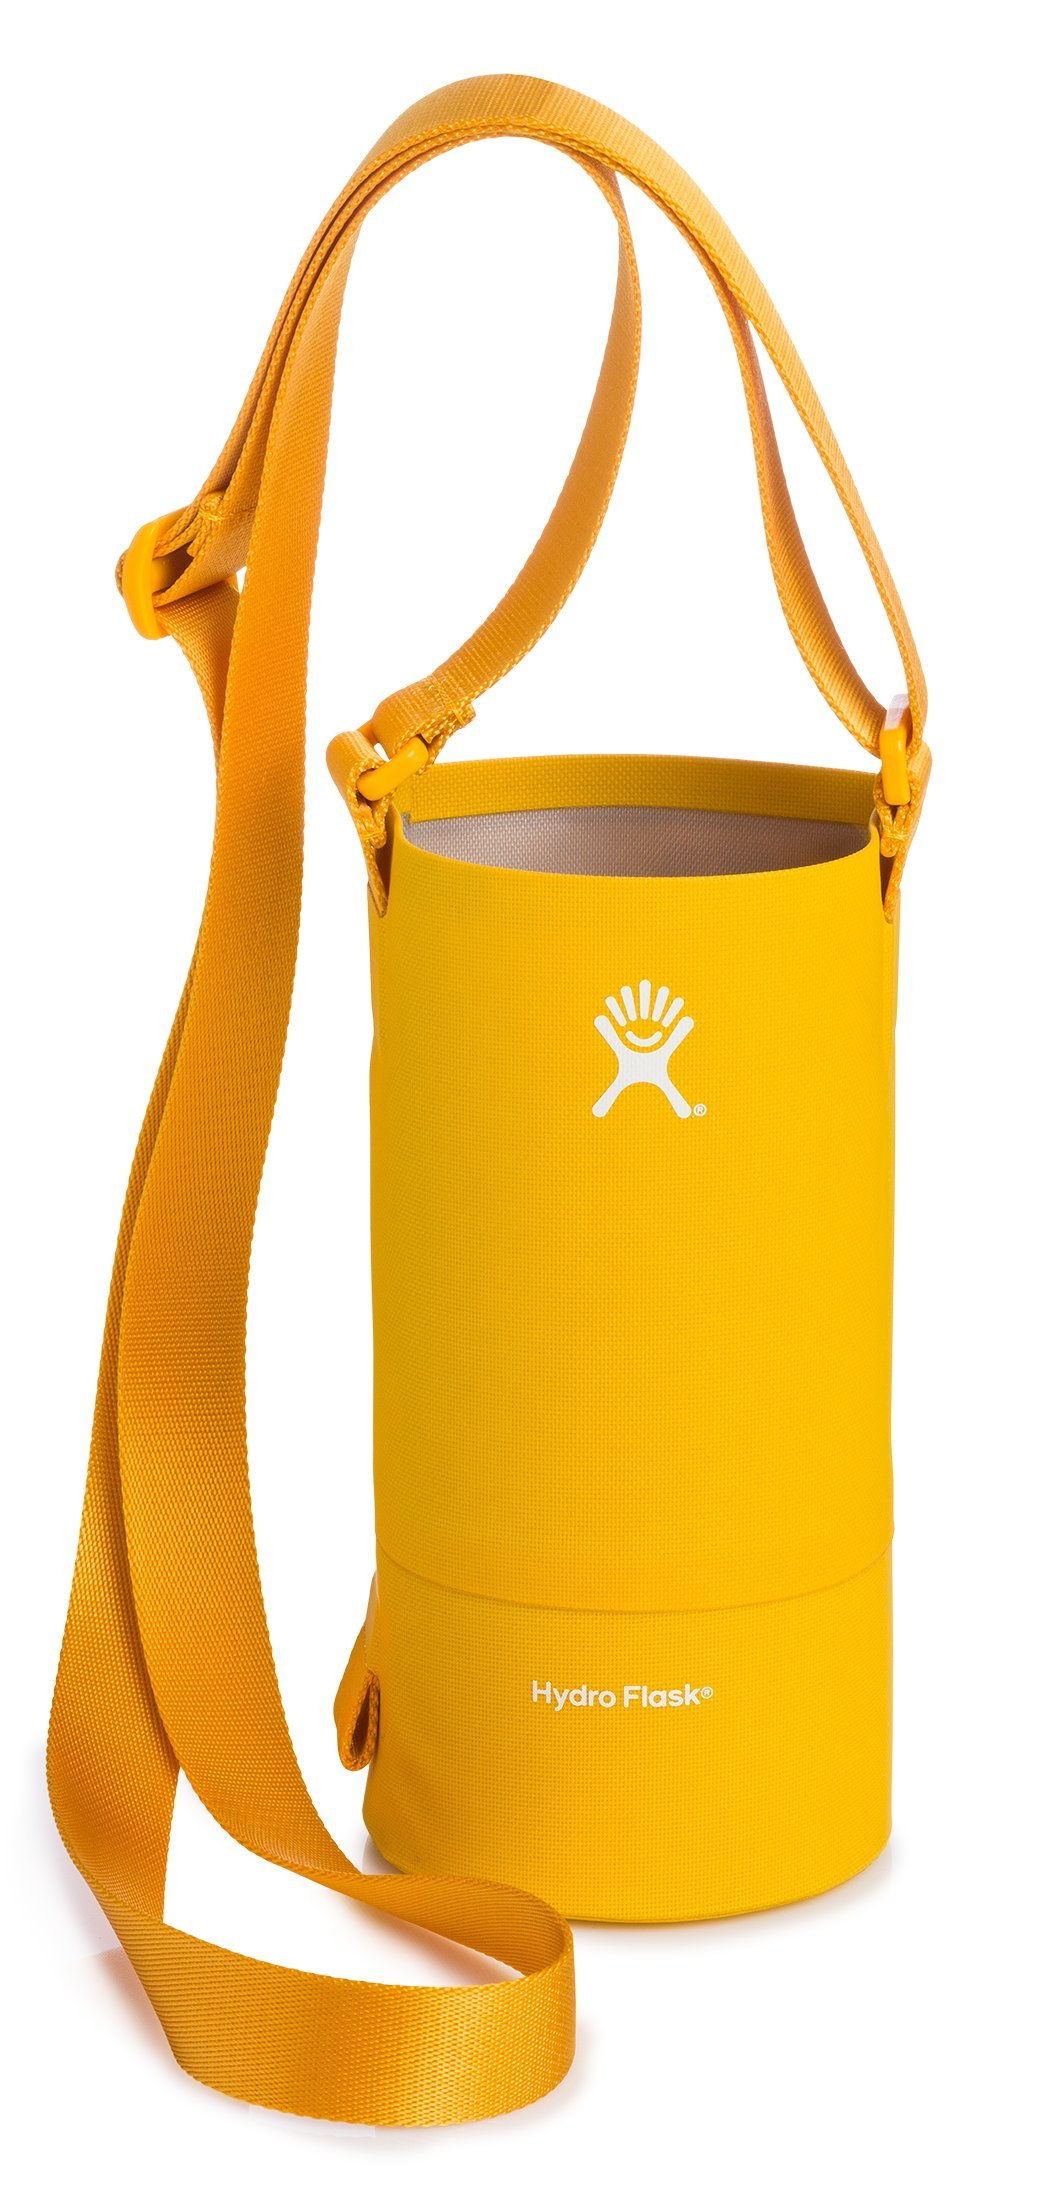 Hydro Flask Large Soft Sided Nylon Tag Along Water Bottle Sling with Pockets, Golden Rod (Fits 32 oz and 40 oz Bottles)